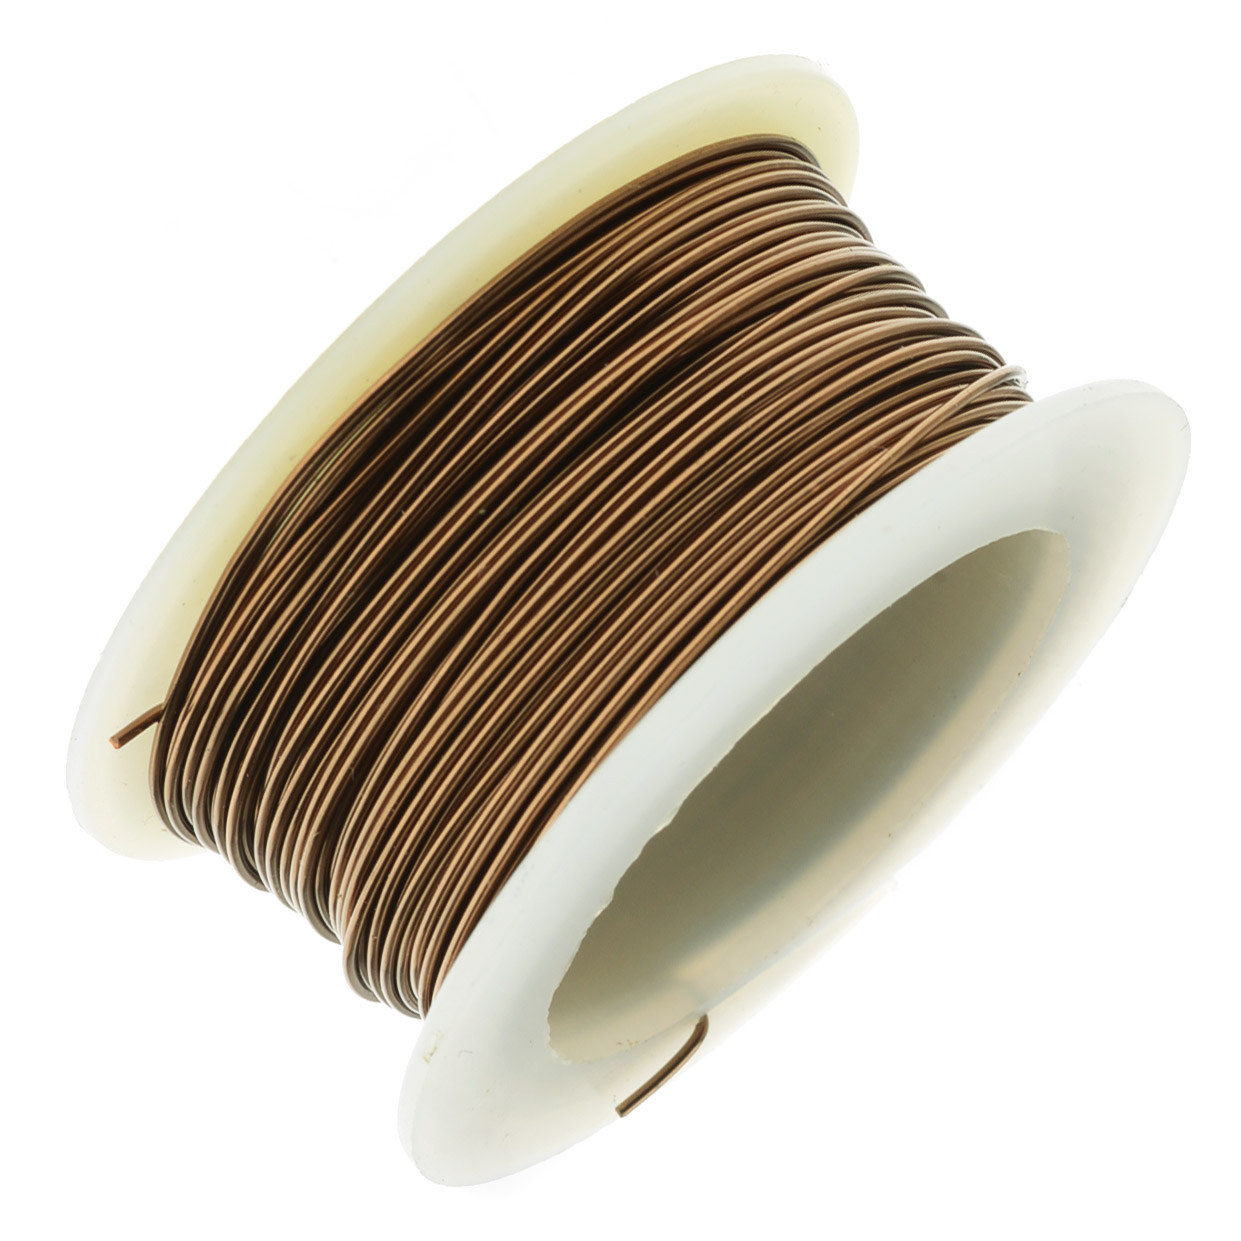 Artistic Wire, Copper Craft Wire 24 Gauge Thick, 10 Yard Spool, Antiqued Brass